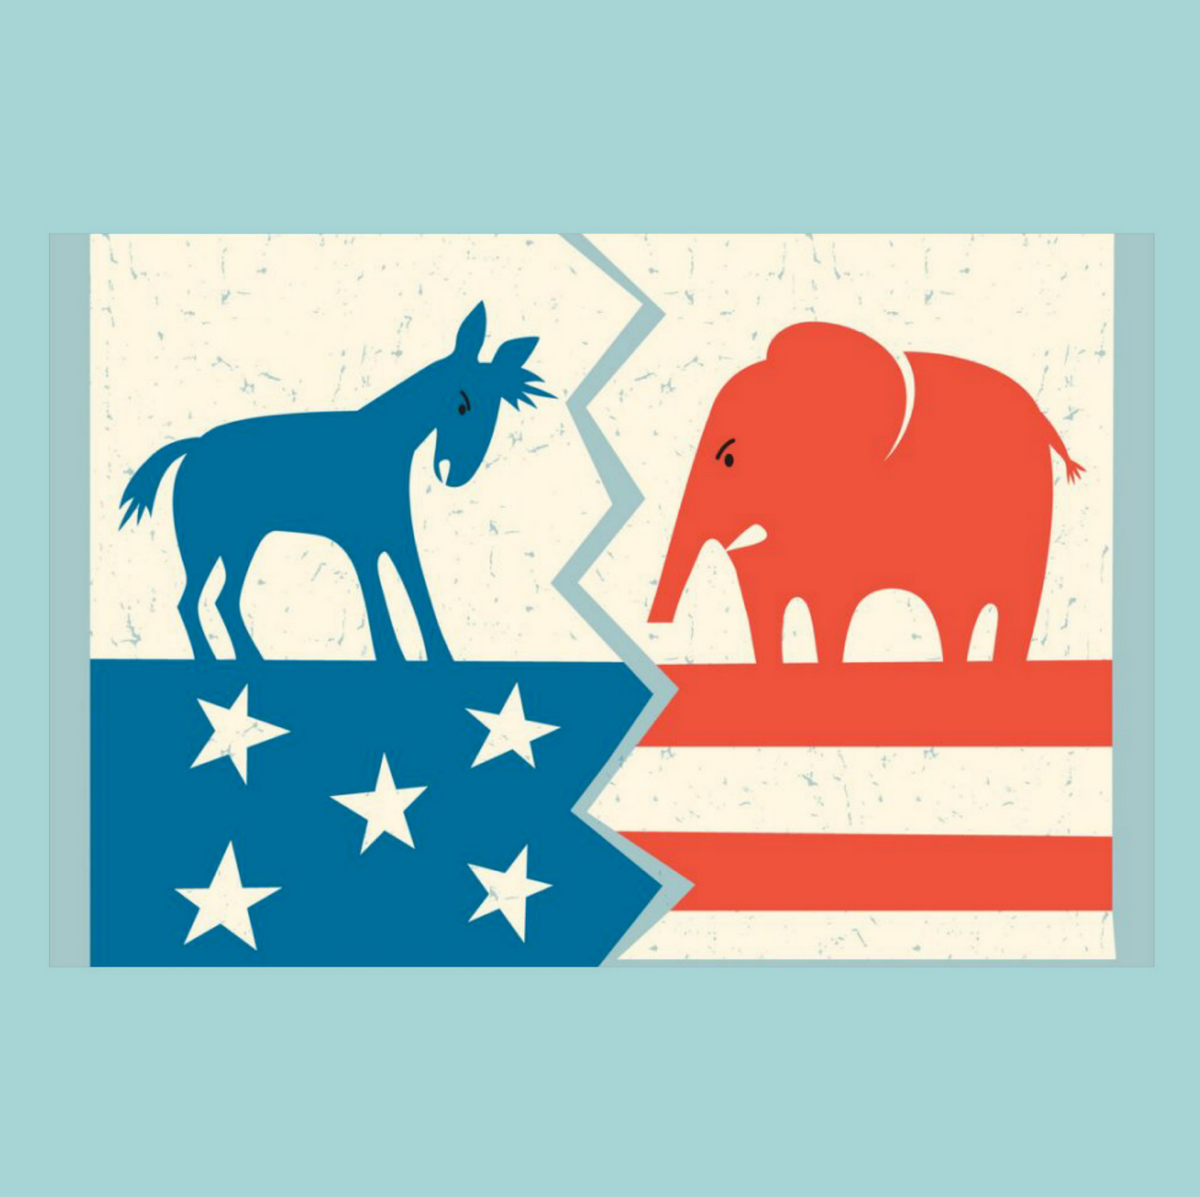 America's Flawed Two Party System